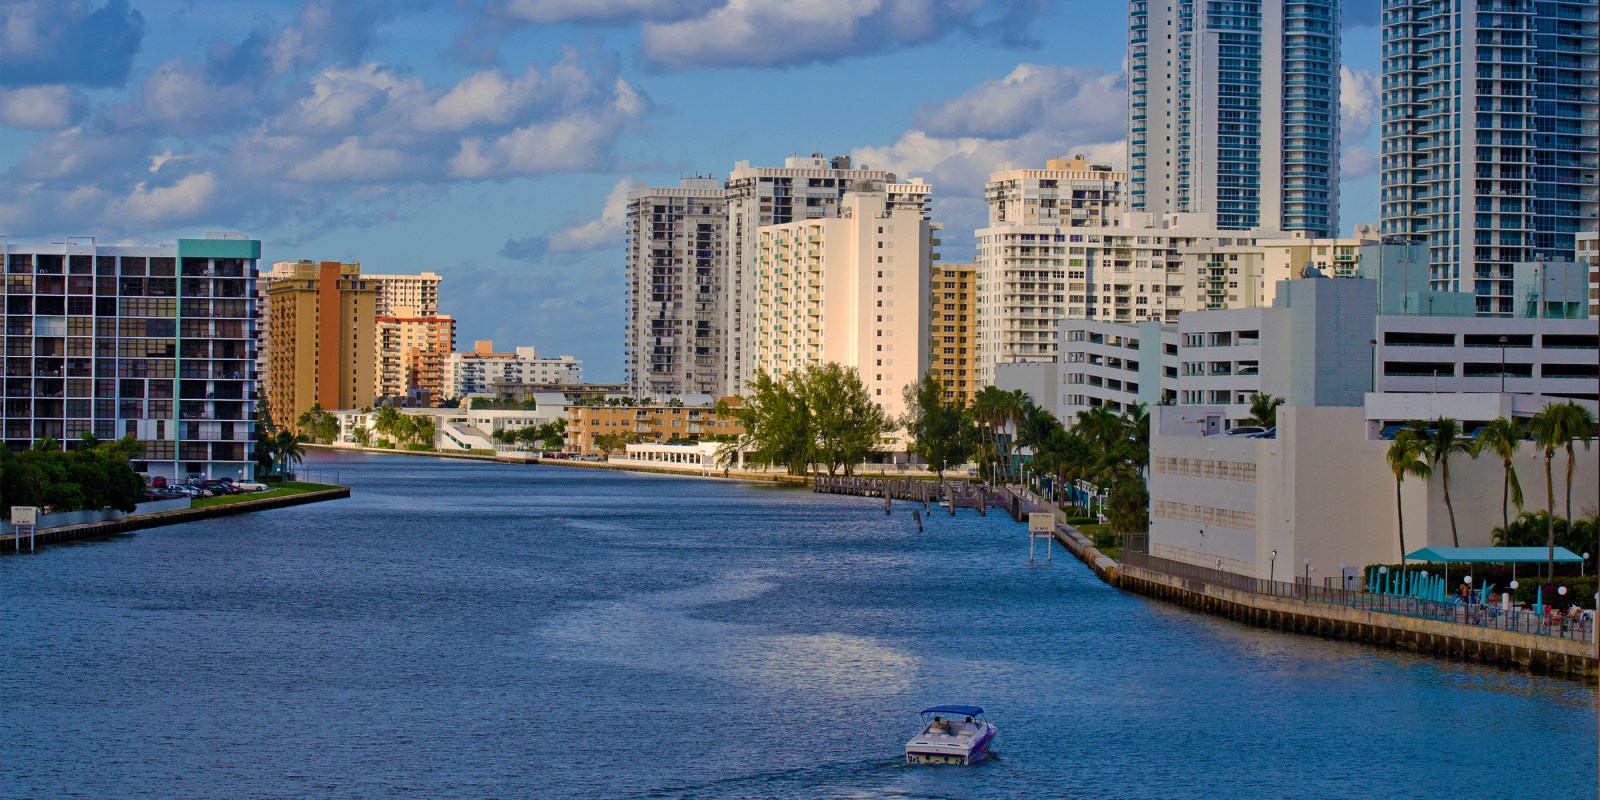 south florida waterway